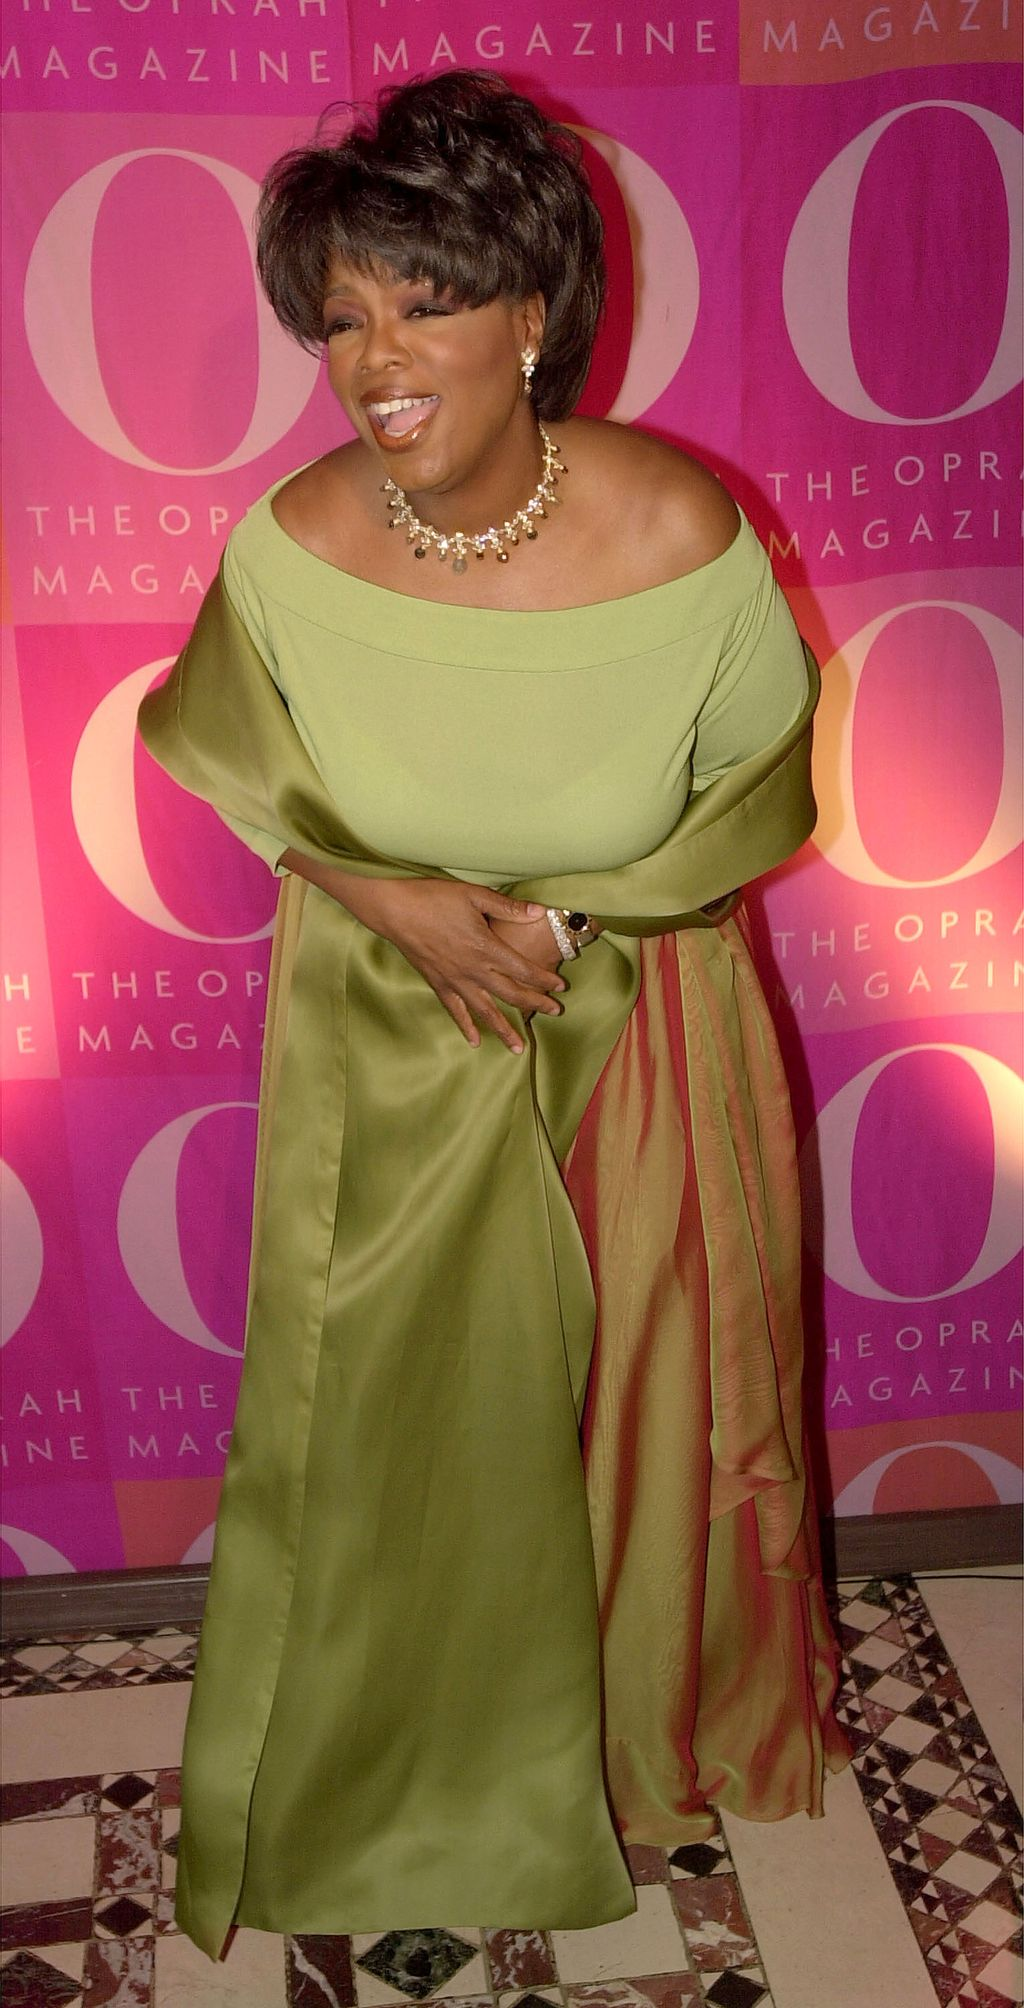 387978 01: Oprah Winfrey poses April 17, 2001 at a 1st anniversary party for O Magazine in New York. (Photo by Spencer Platt/Newsmakers)